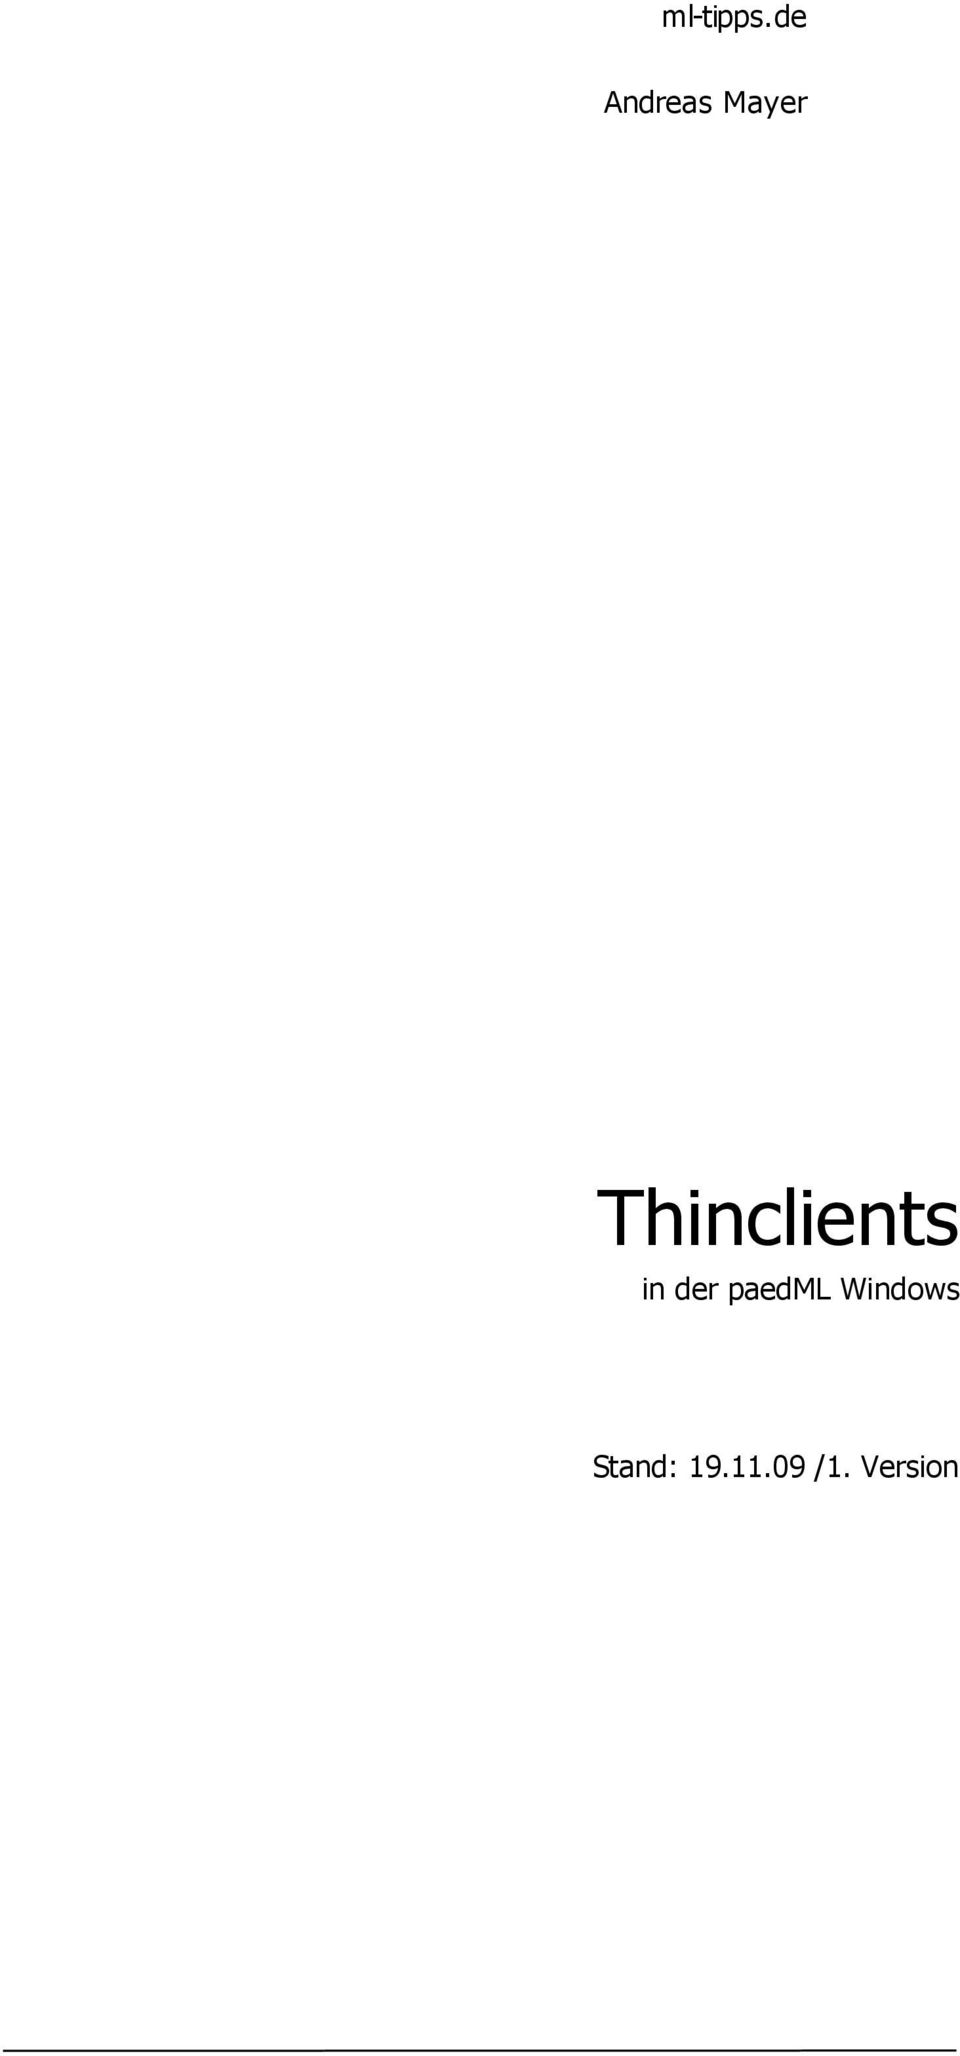 Thinclients in der